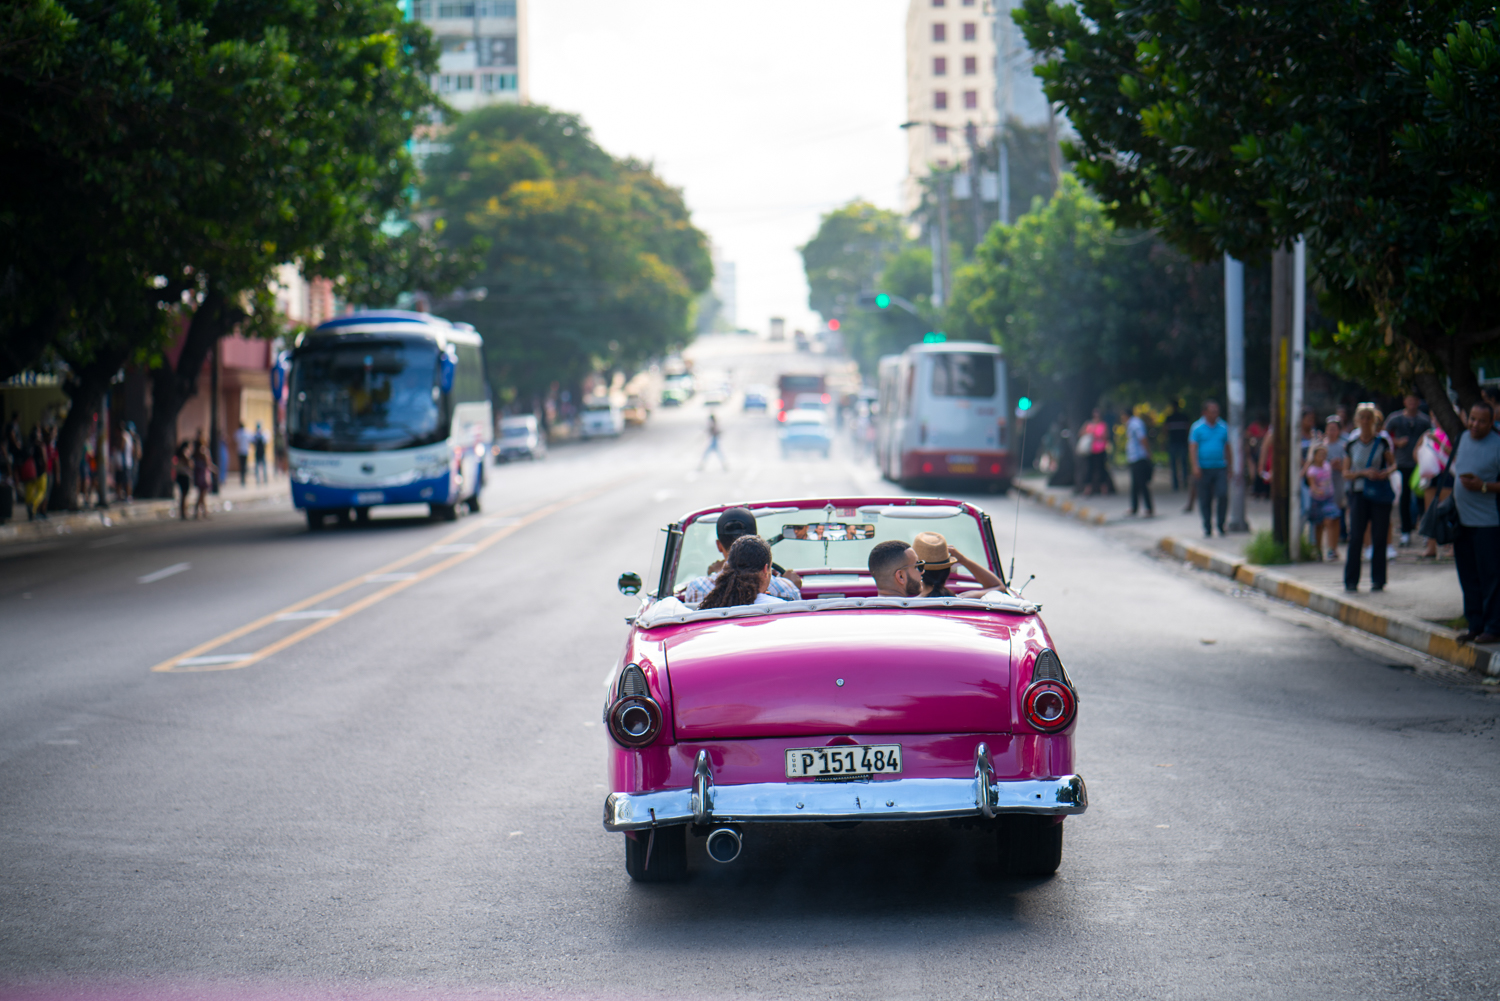 I also made a blog post about this image which truly explained our first days experience in Cuba. You can read more about it  here .